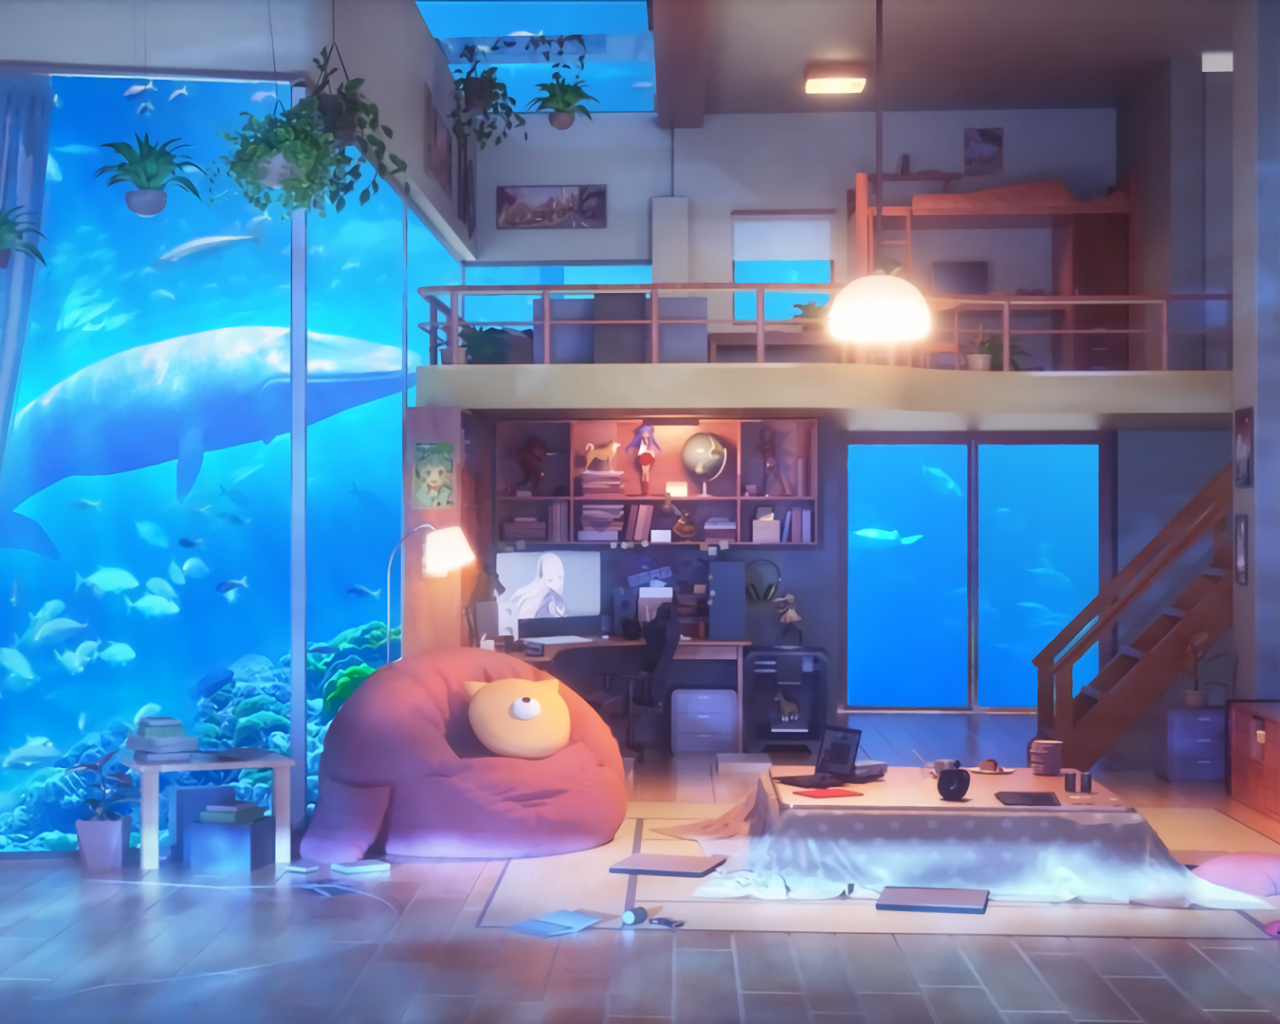 Free Download Anime Room Wallpapers Top Anime Room Backgrounds 1920x1080 For Your Desktop Mobile Tablet Explore 28 Room Anime Wallpapers Room Anime Wallpapers Wallpaper Room Wallpaper For Room